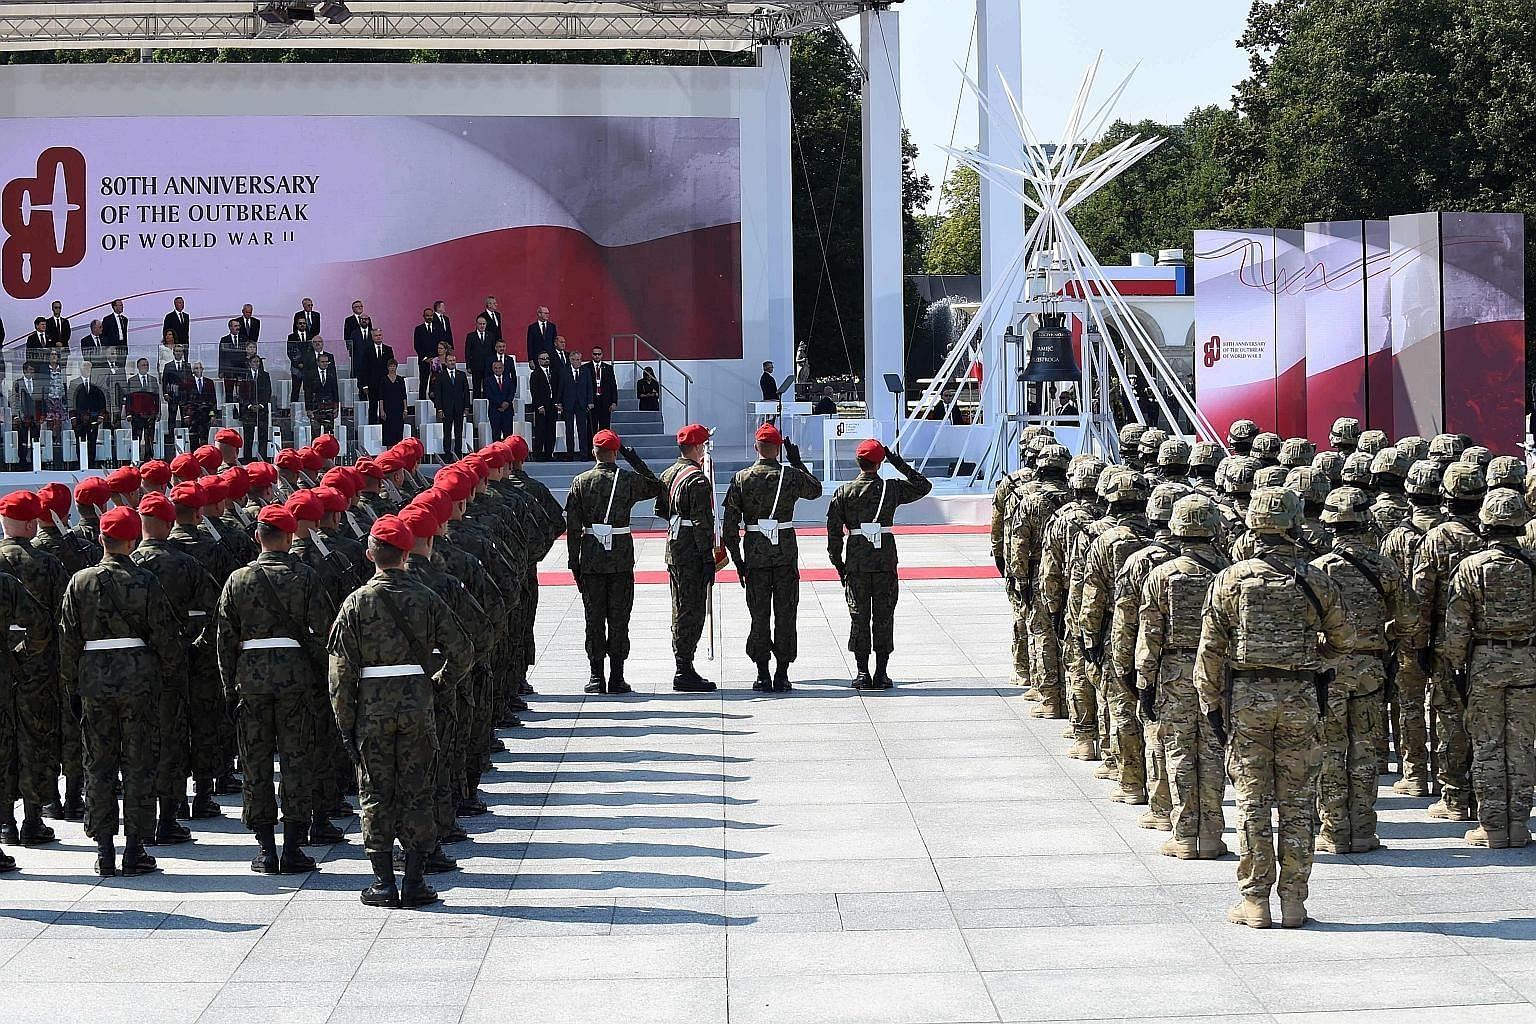 Heads of state and officials at a military ceremony, part of commemorations marking 80 years since the outbreak of World War II, at Pilsudski Square in Warsaw, Poland, yesterday. Poland lost about a fifth of its population, including the vast majorit